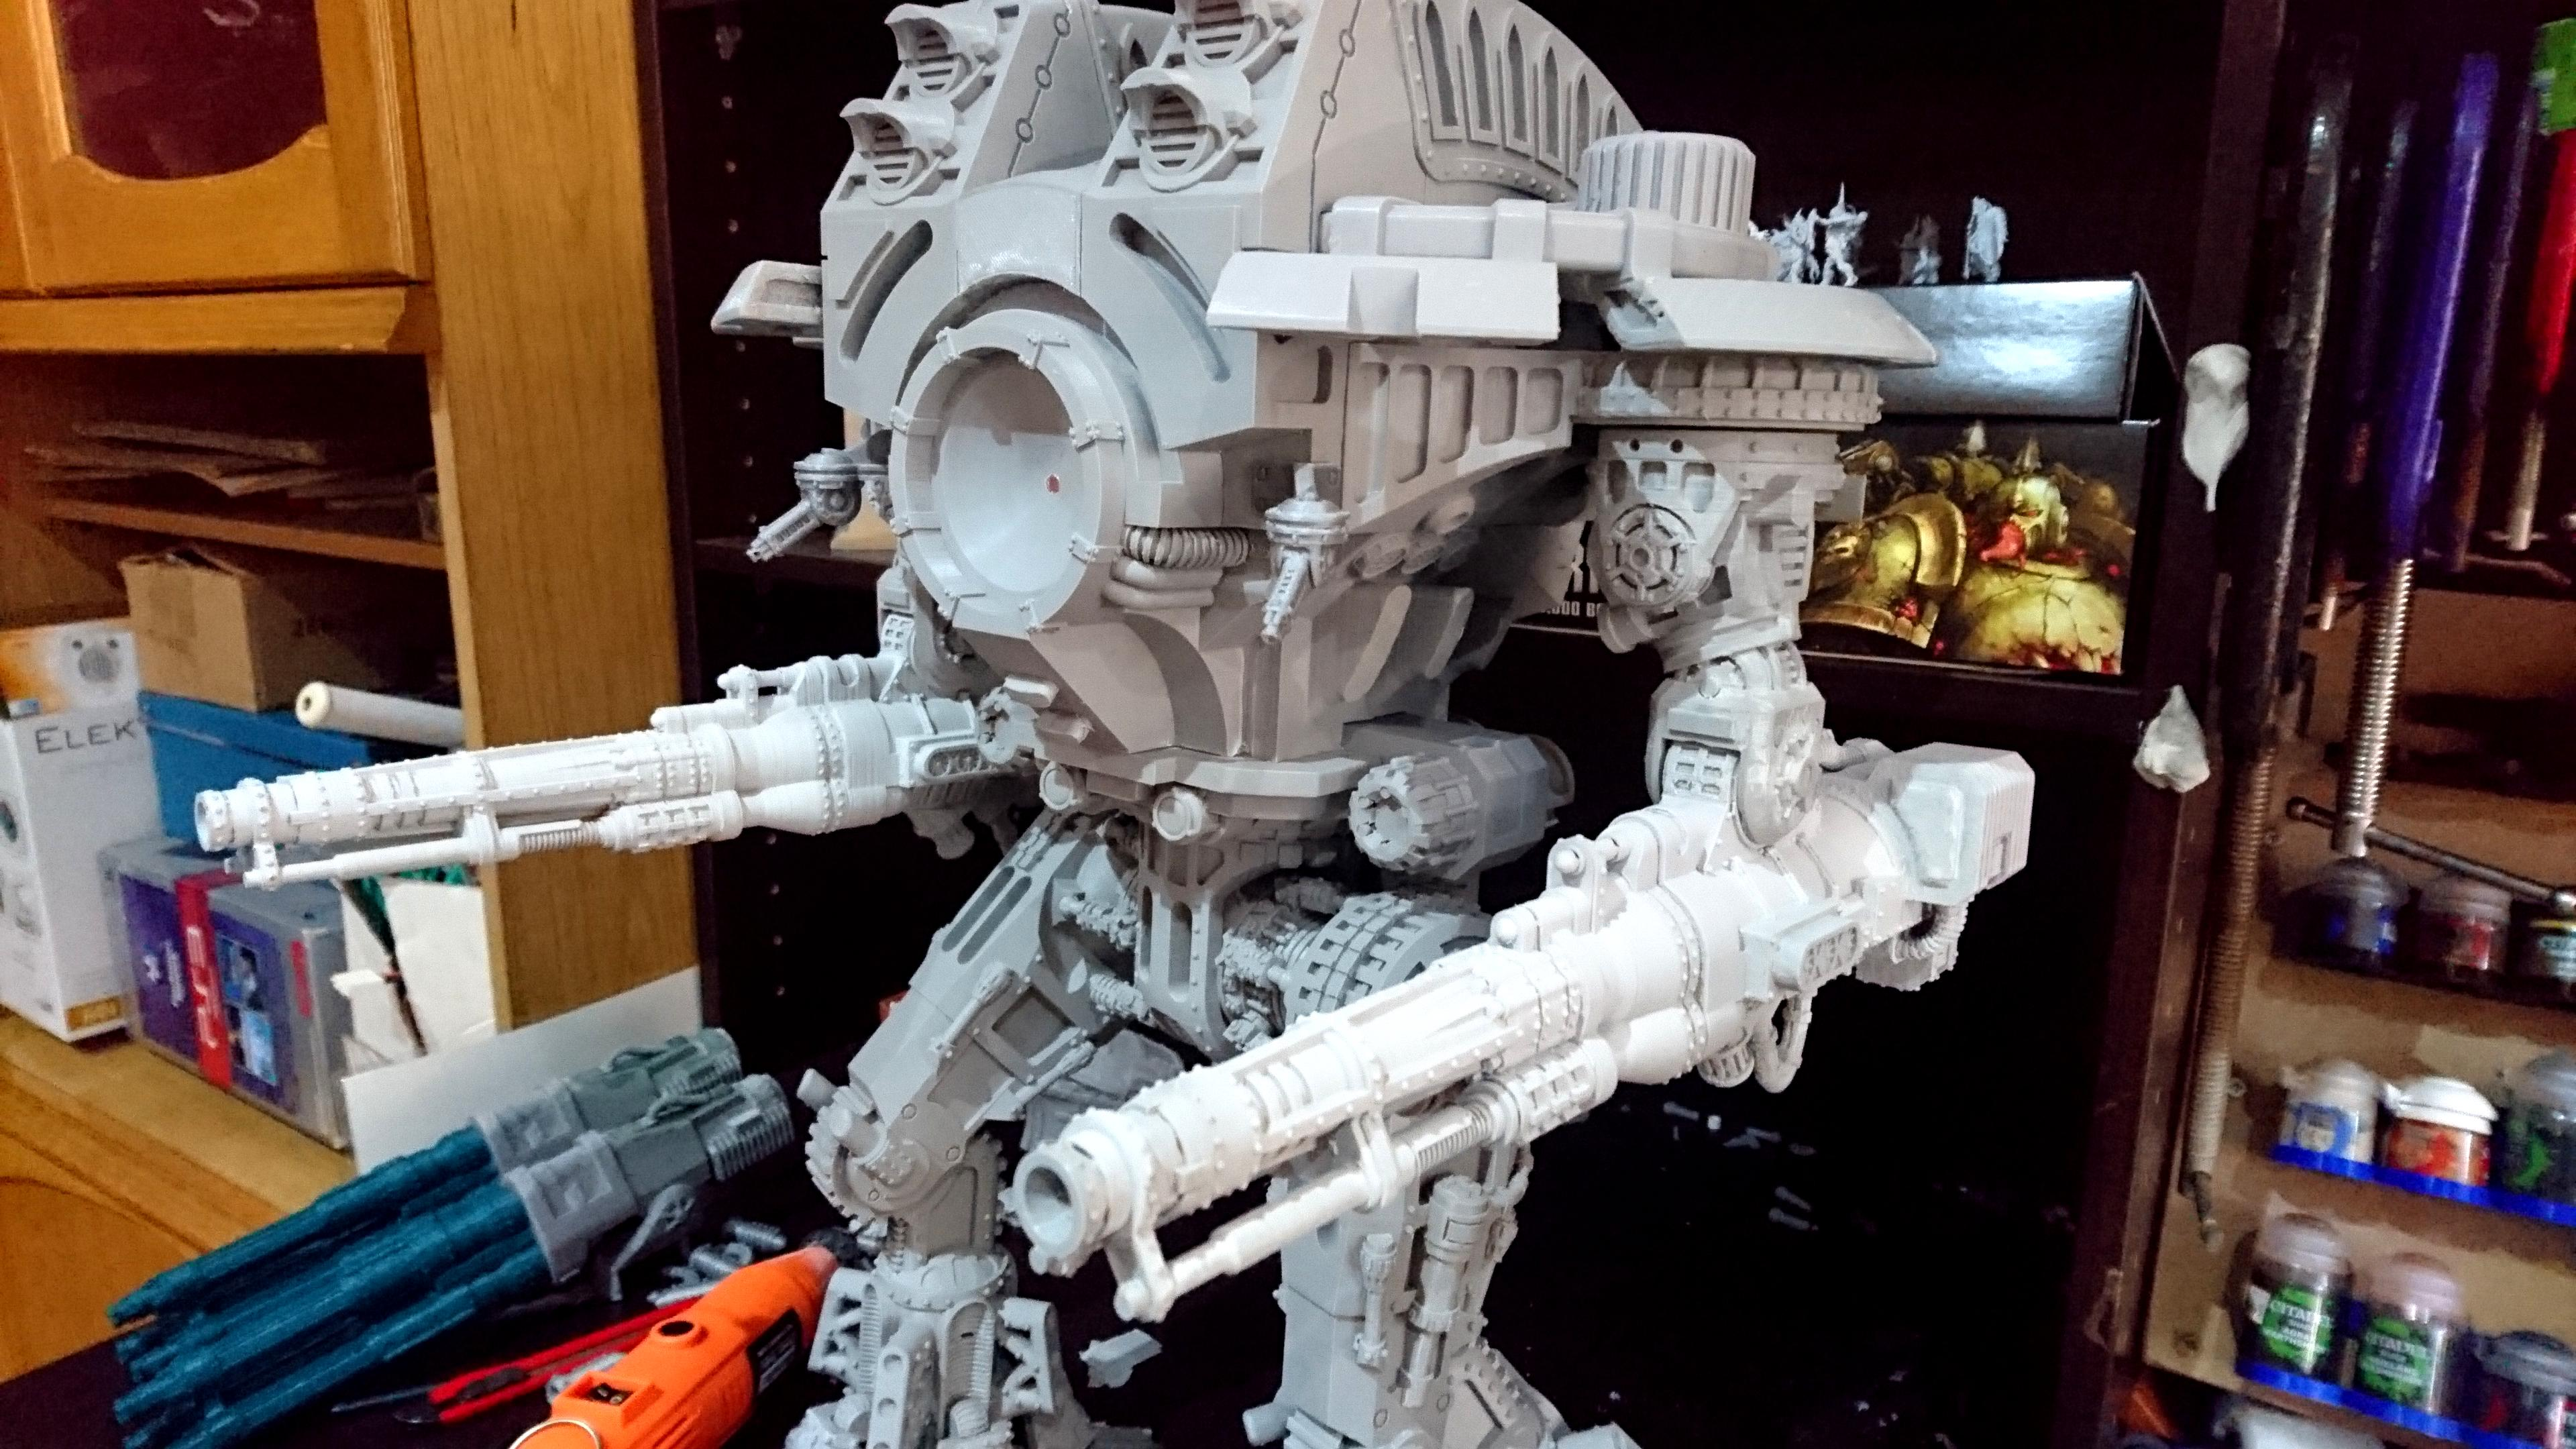 The primed volcano canons